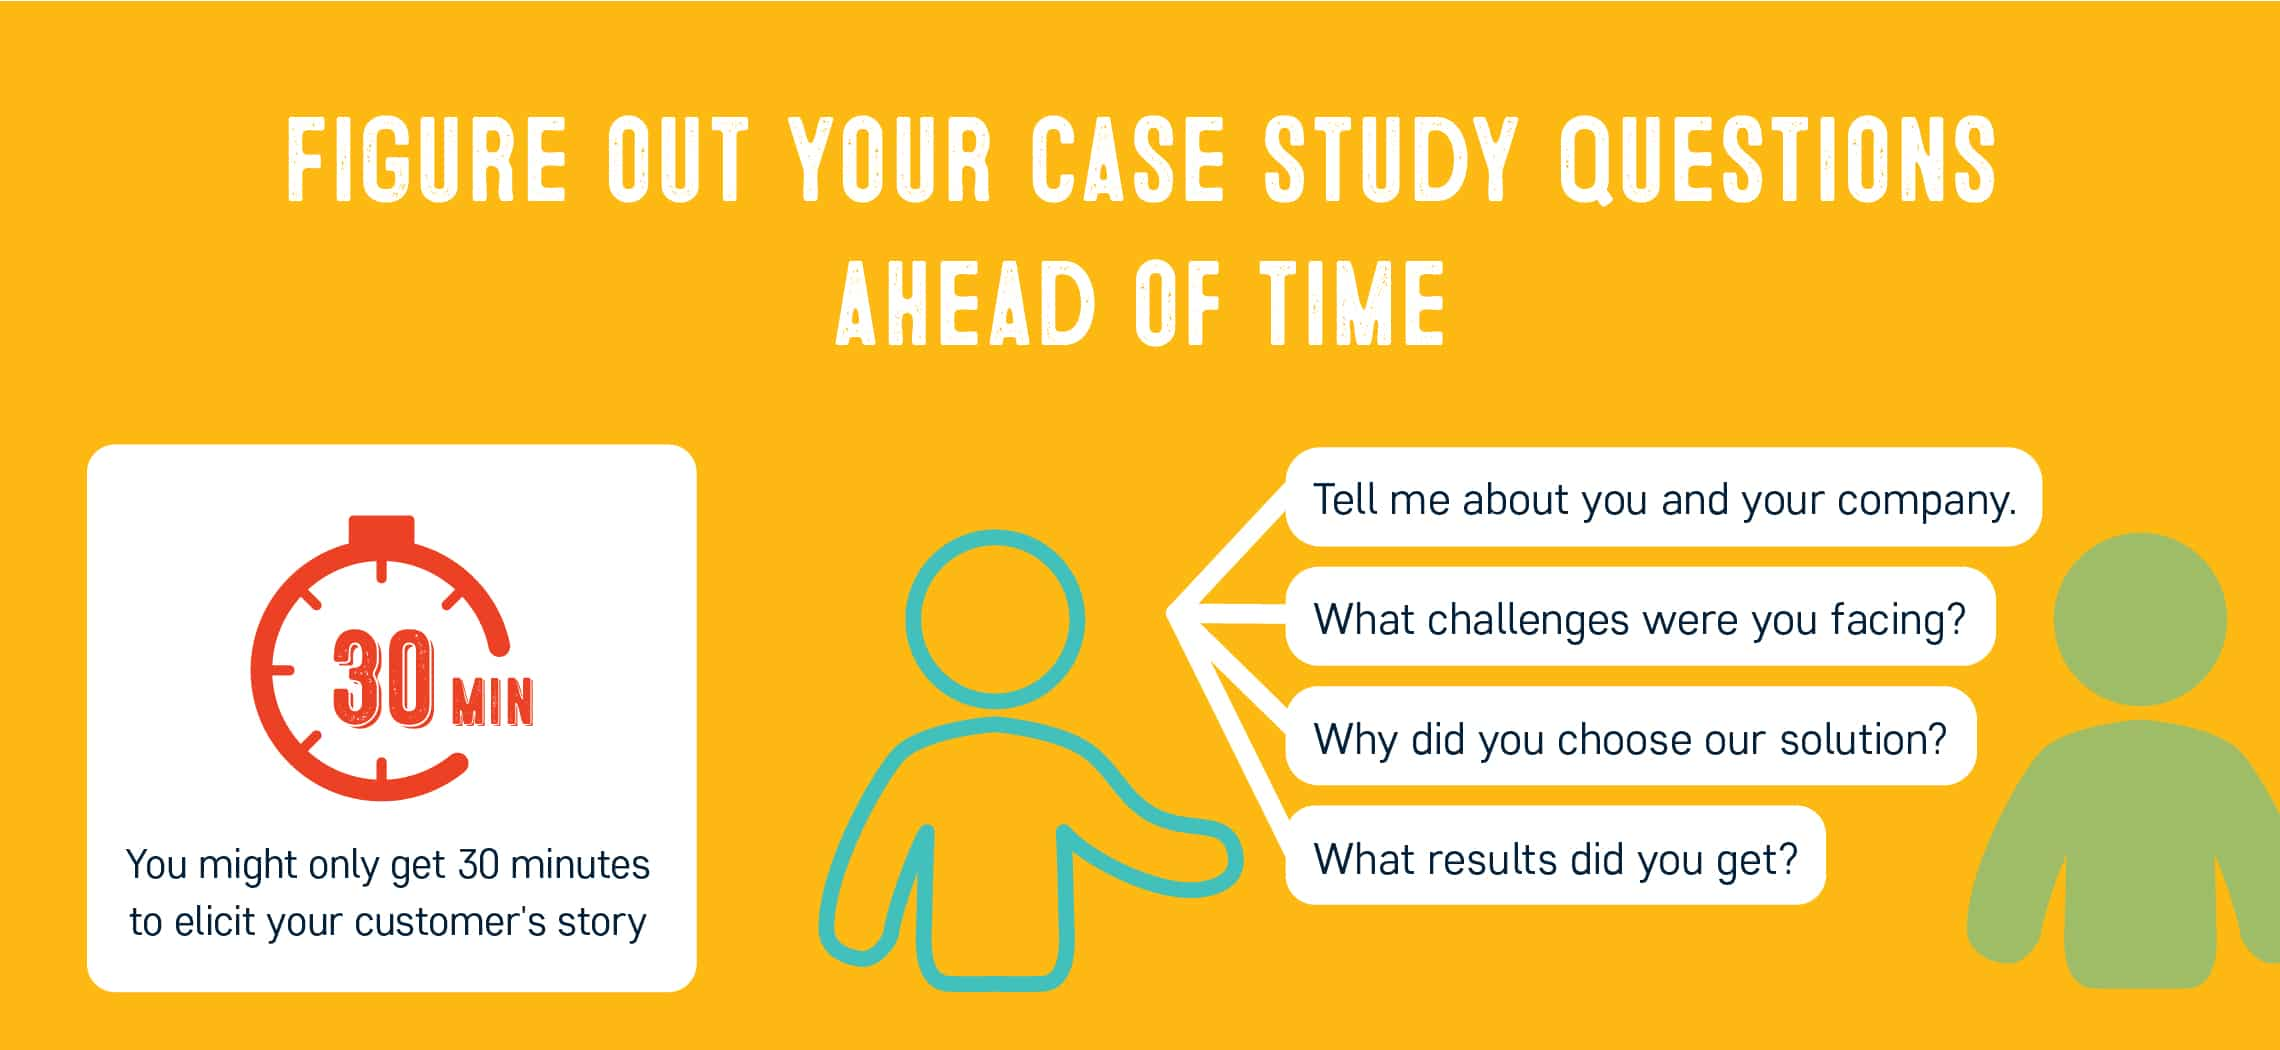 Case study questions: Importance of planning ahead